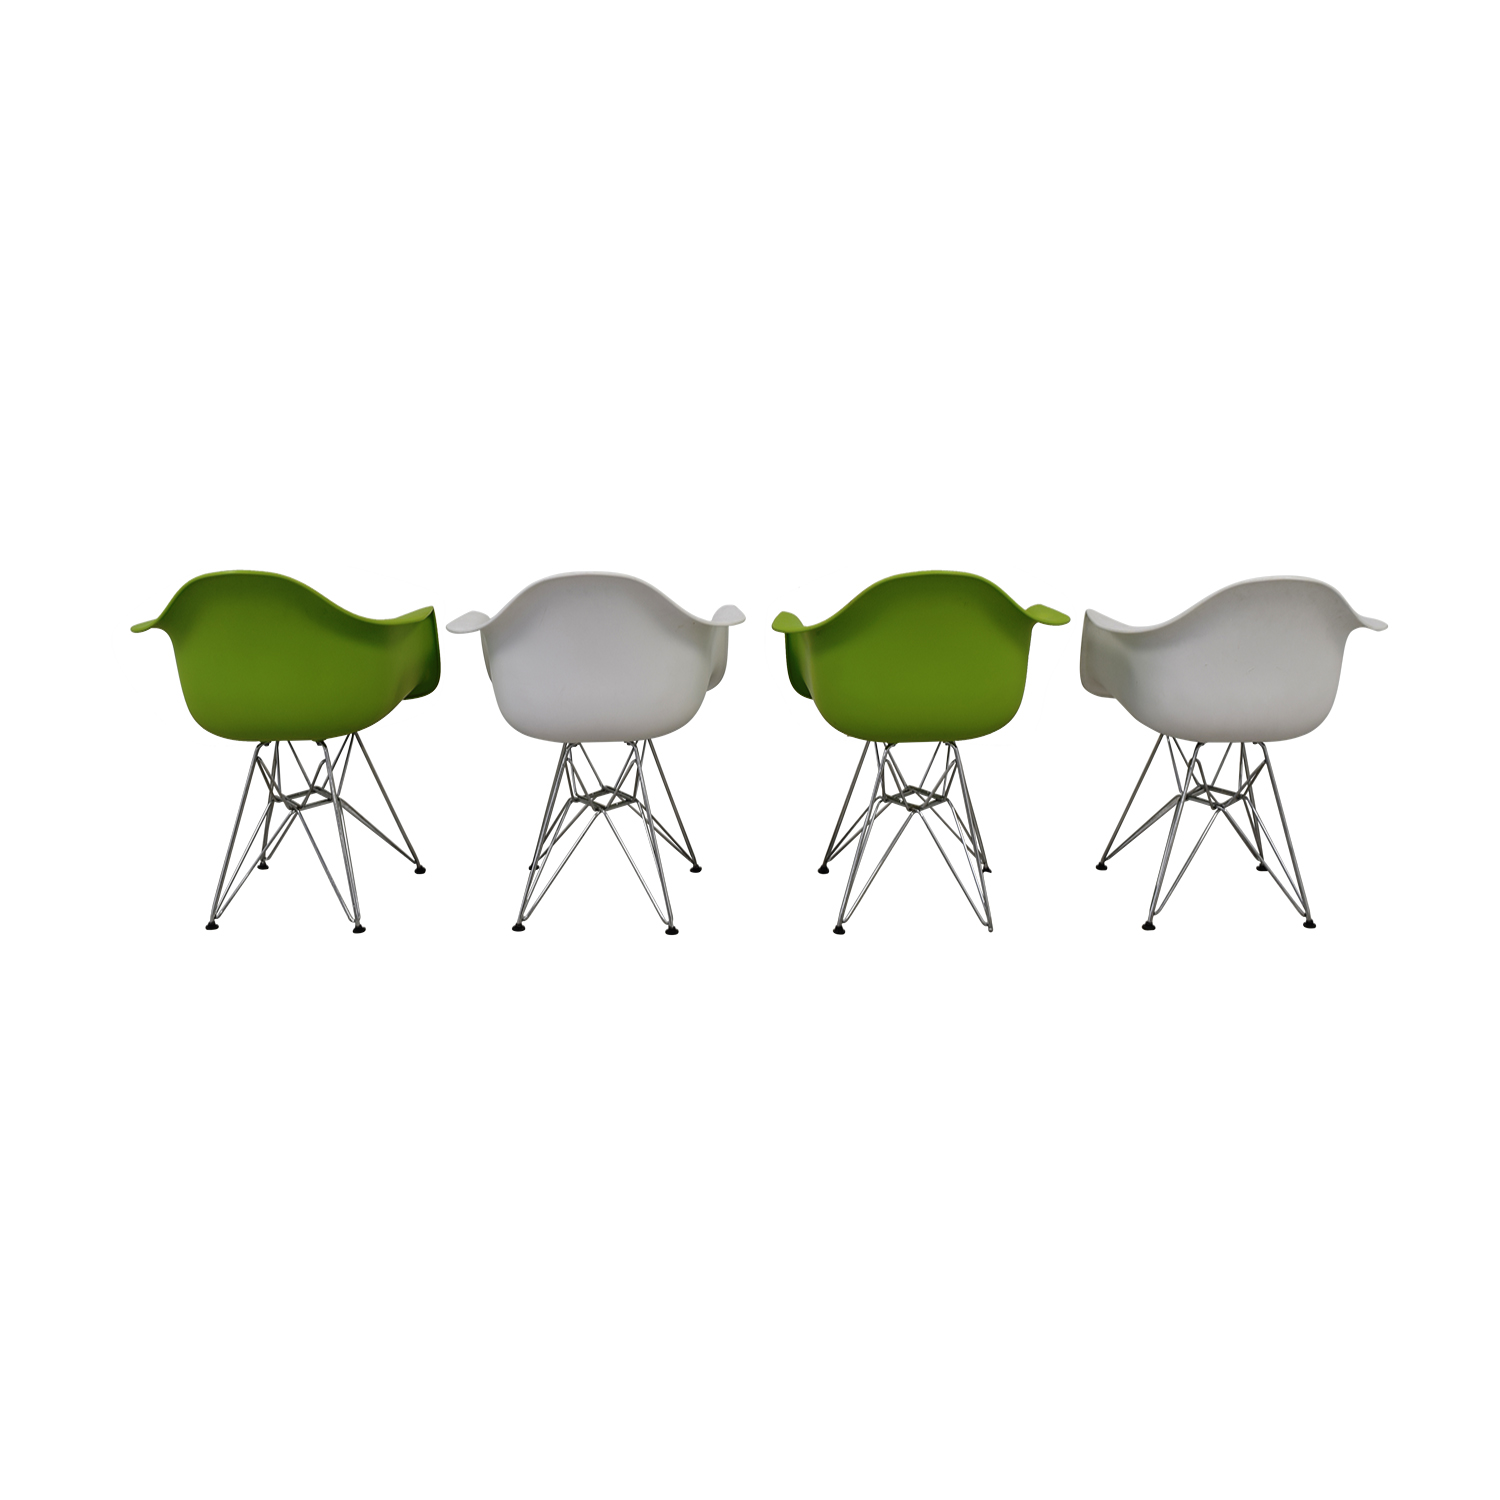 buy Replica Eames Eiffel Style  Green and White Chairs  Chairs